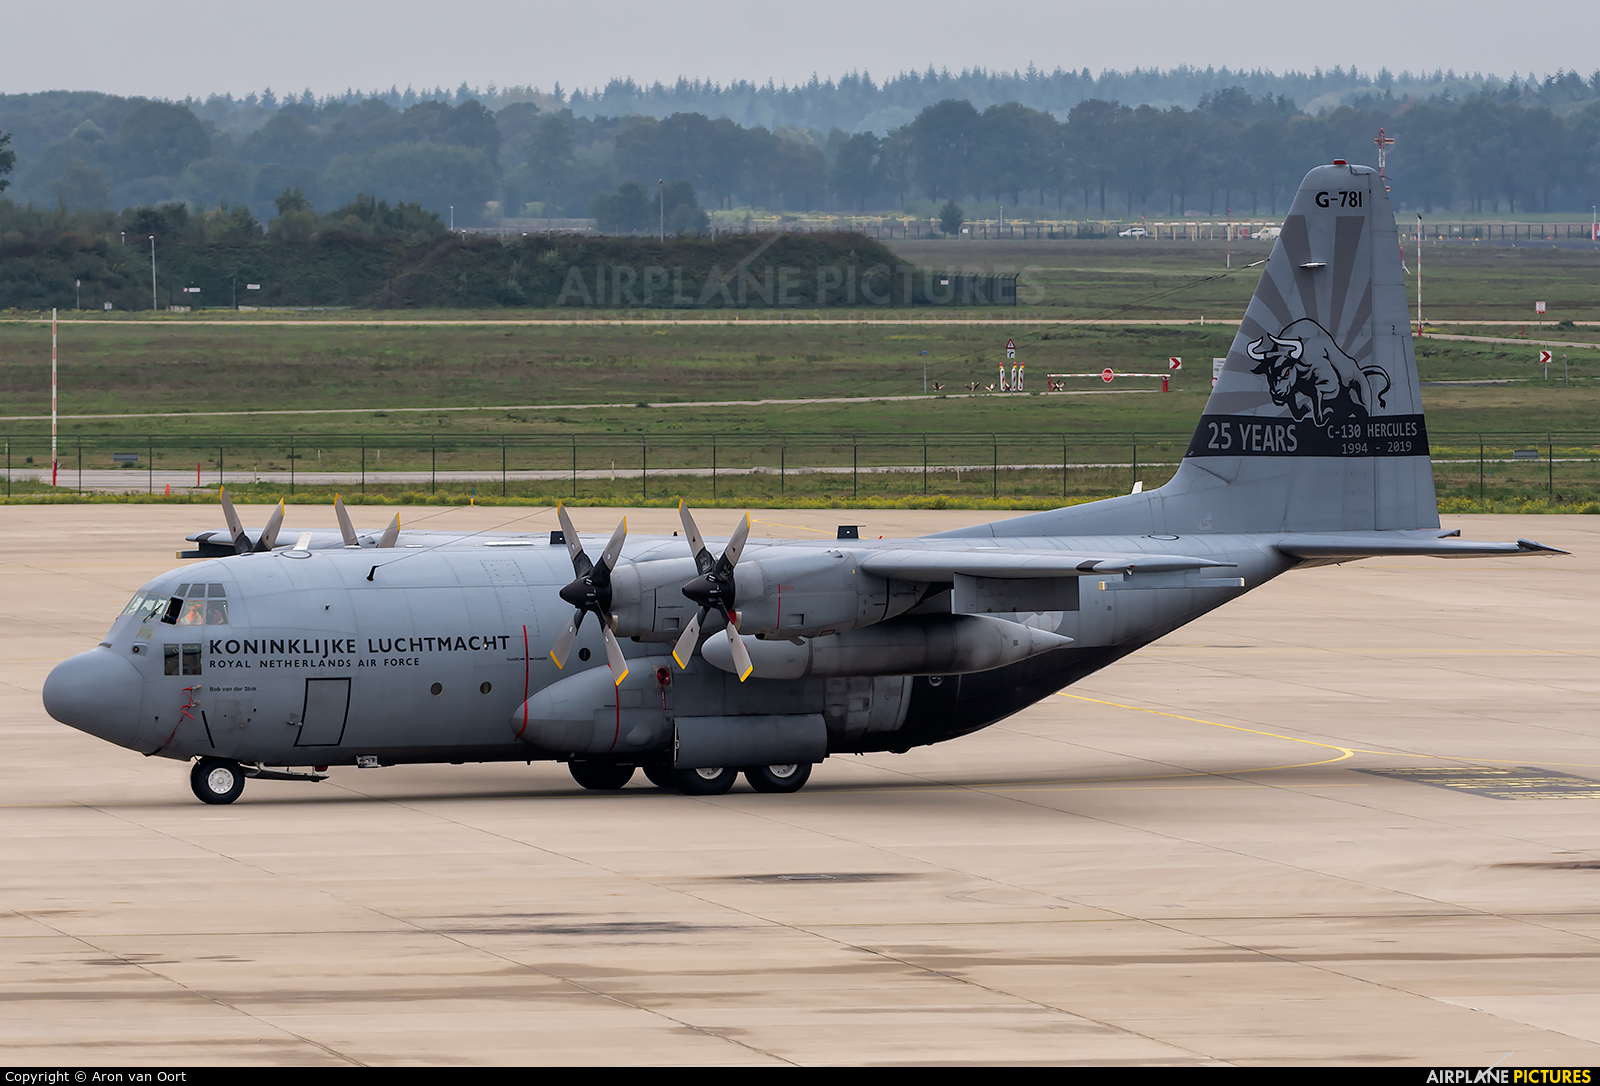 Netherlands - Air Force G-781 aircraft at Eindhoven